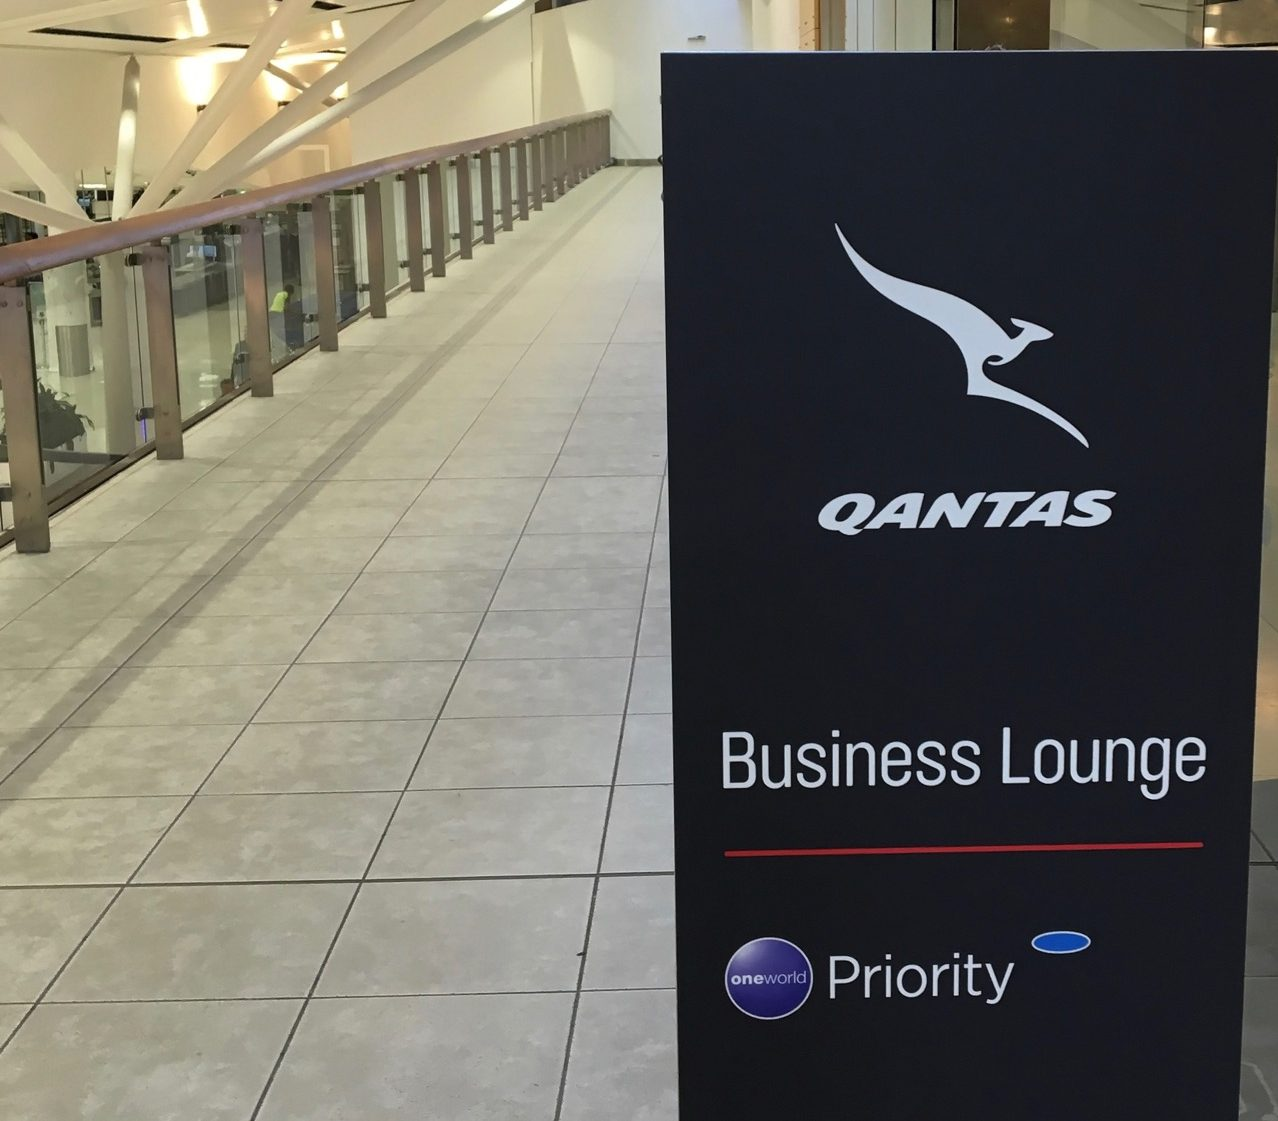 qantas-international-business-lounge-entrance-1